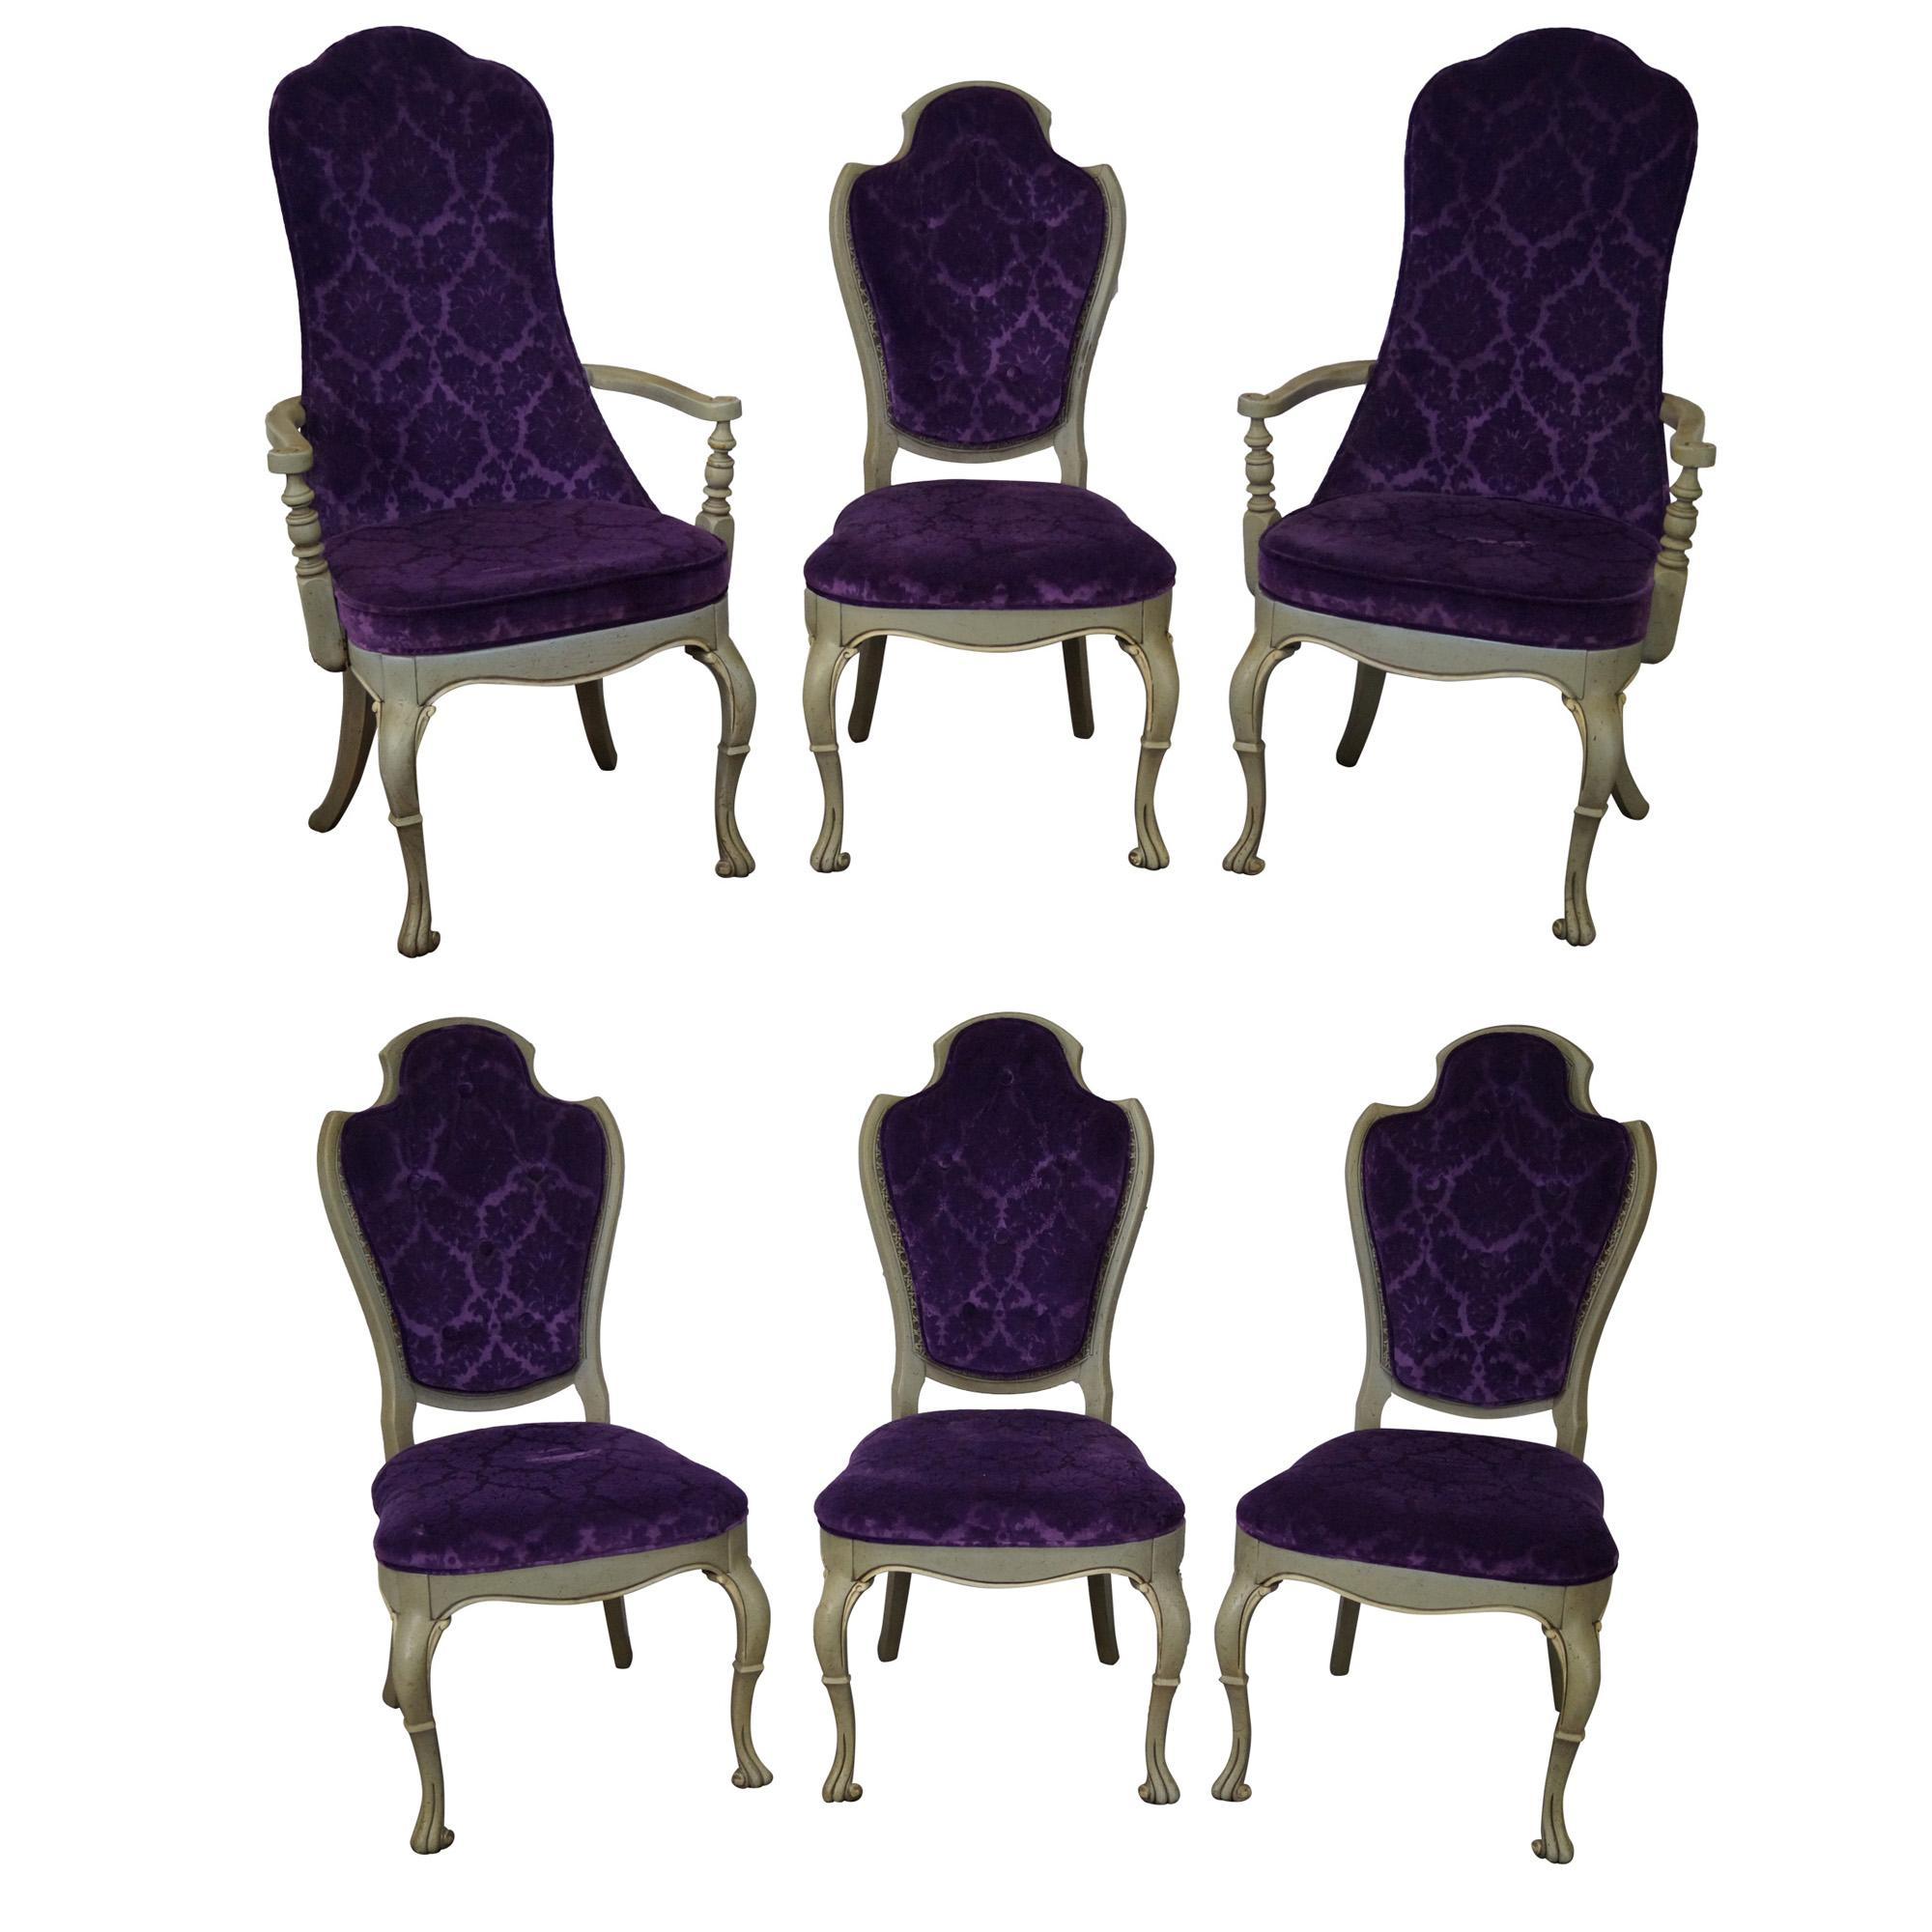 purple upholstered dining chairs gold universal chair covers vintage 1950s set of 6 chairish